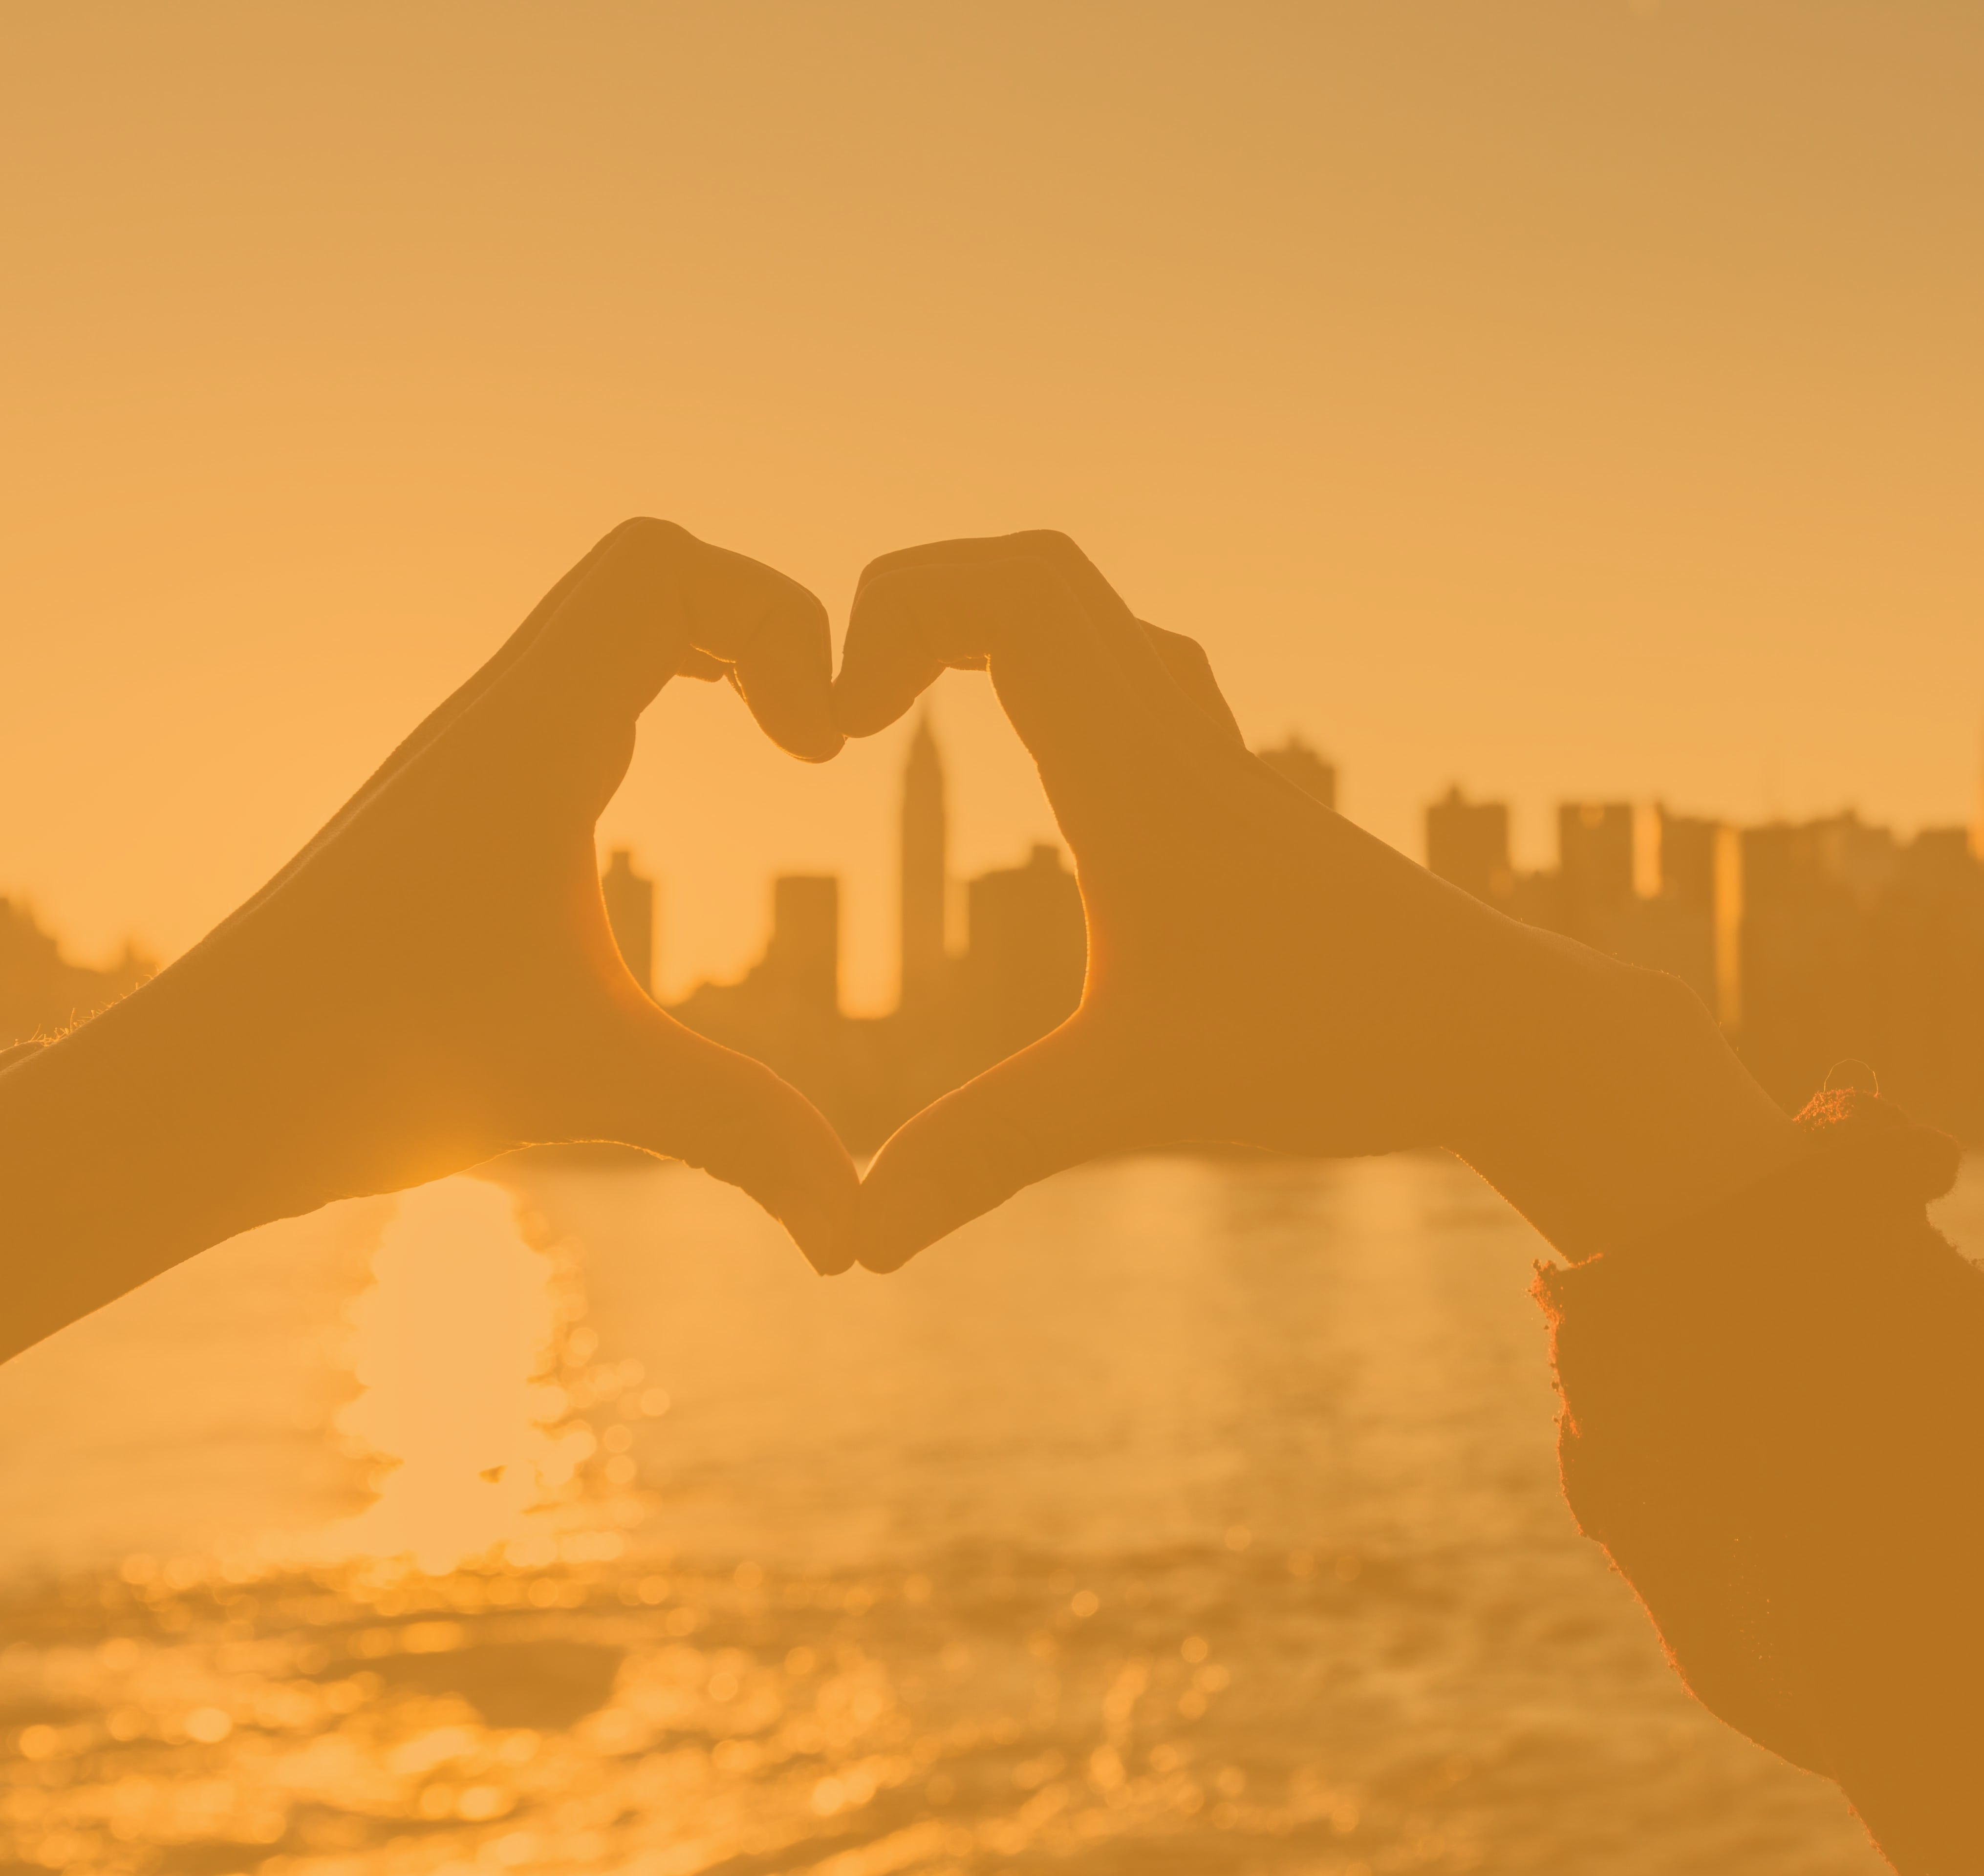 Hands forming a heart around a skyline